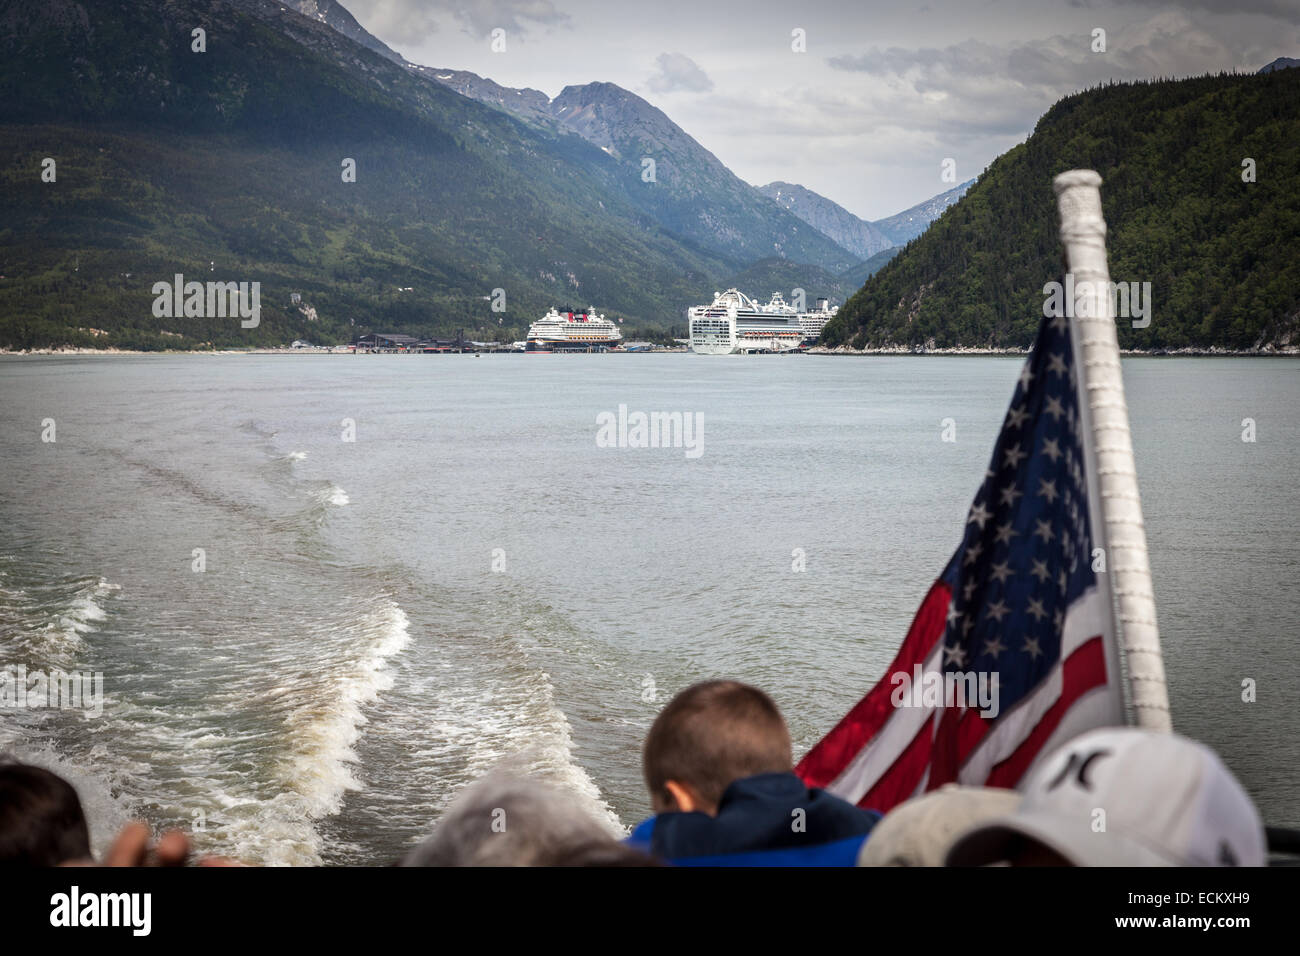 Cruise Ships docked in Skagway, Alaska, USA, North America.  Viewed from a ferry on the Taiya Inlet. - Stock Image